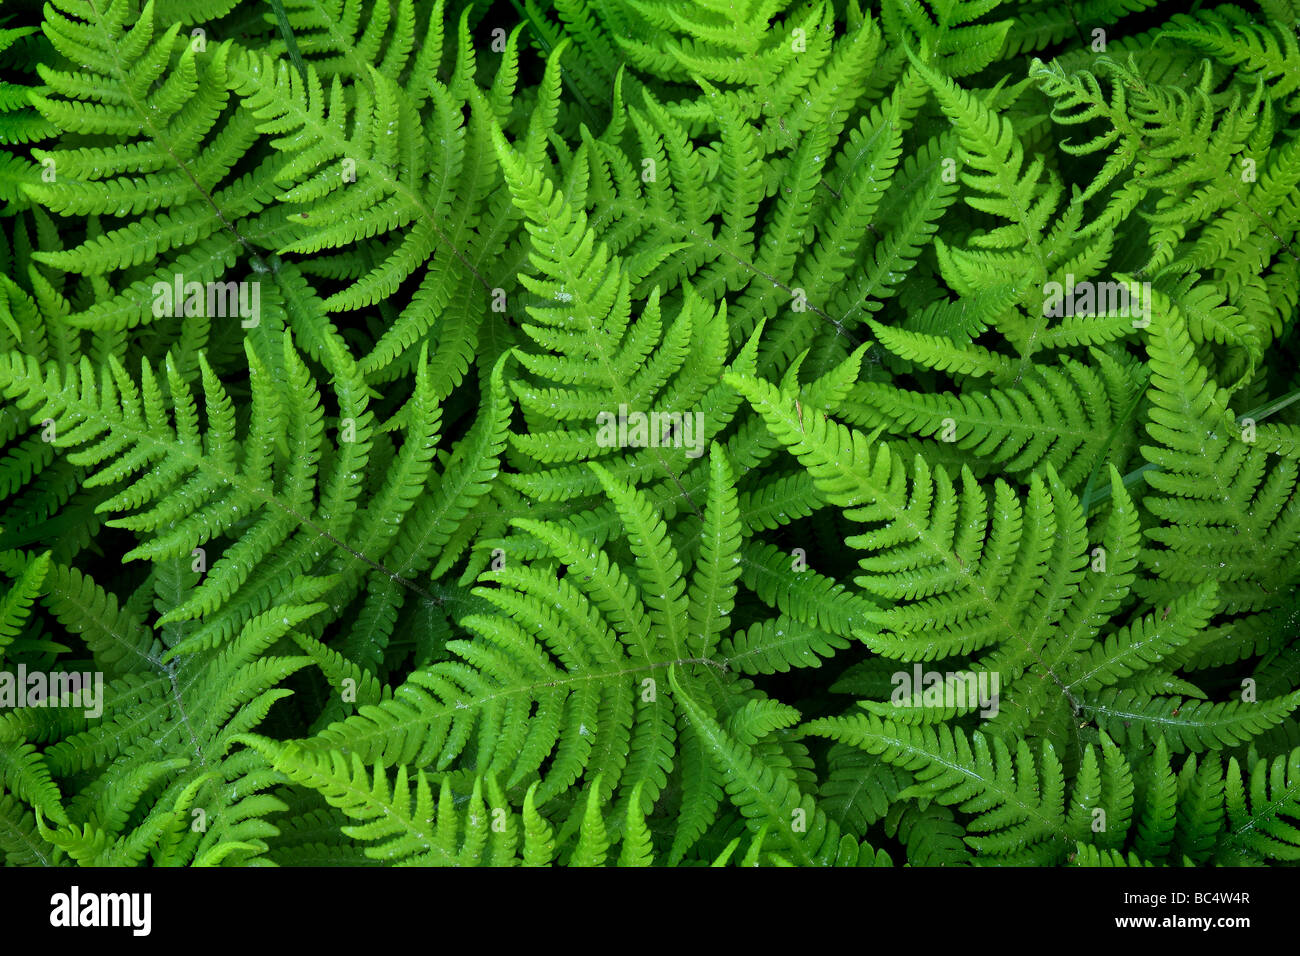 Ferns, Phegopteris connectilis, in a forest near the lake Vansjø in Østfold, Norway. - Stock Image